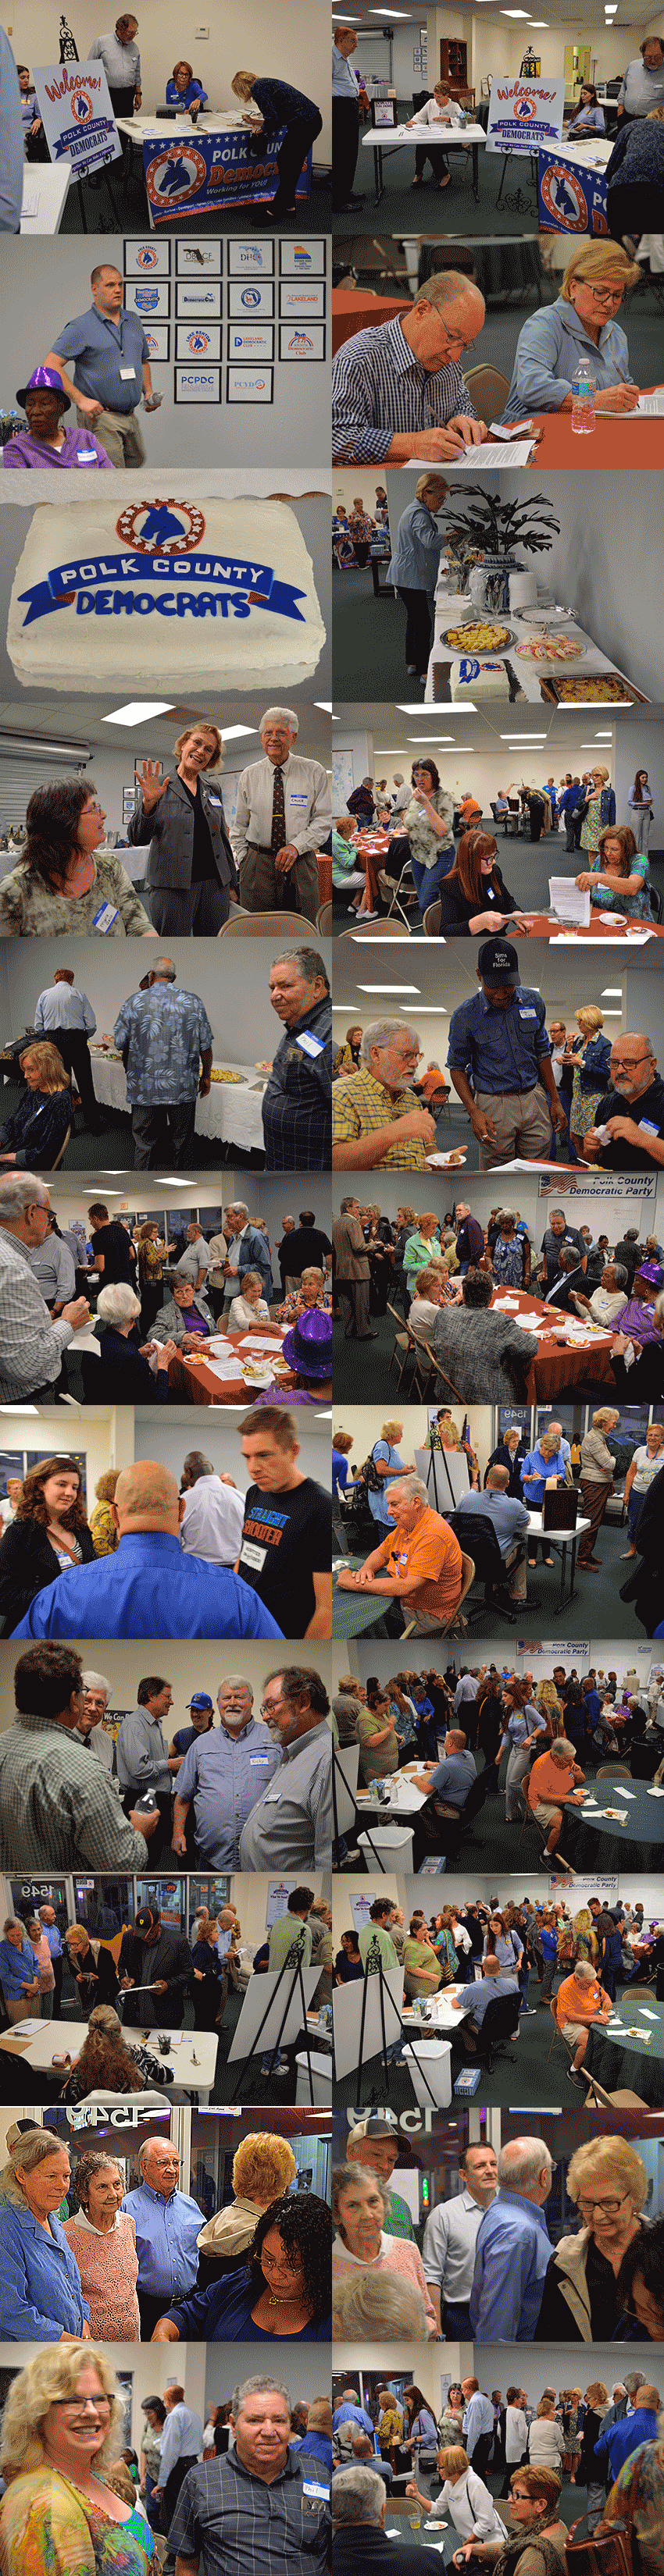 Polk Democrats celebrate their newheadquarters in Lakeland on February 2, 2019.